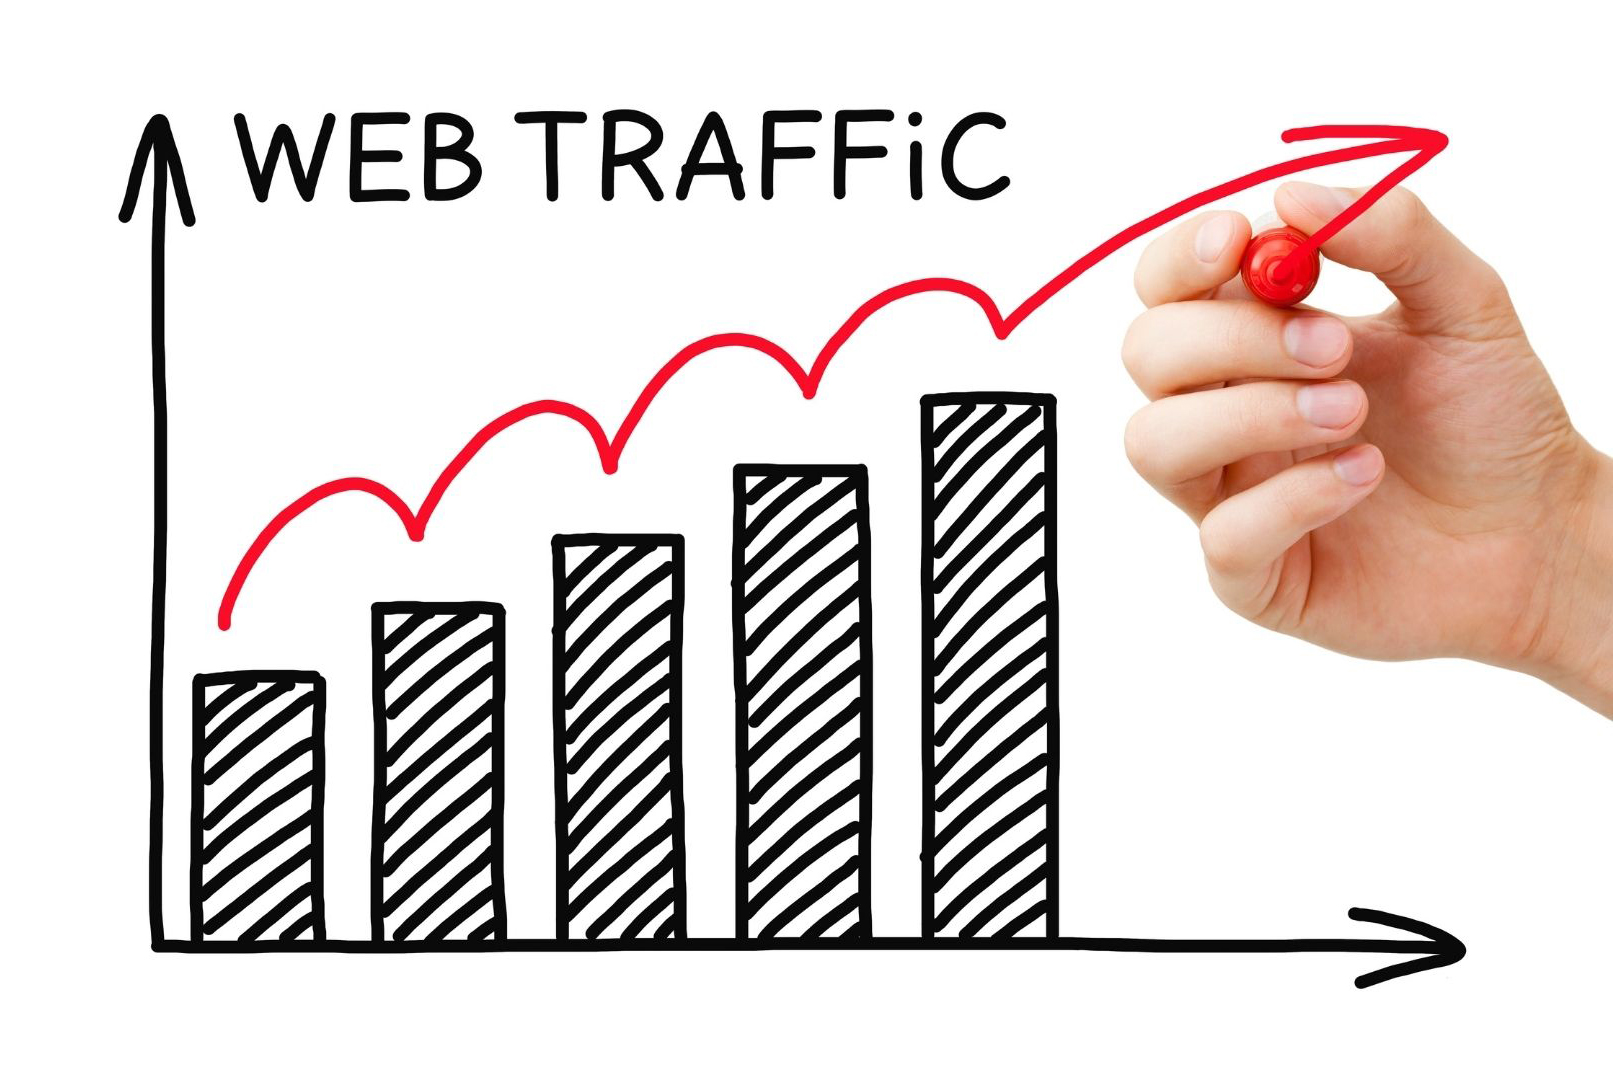 Web traffic traffic bar chart with red arrow ascending indicating an increase to traffic